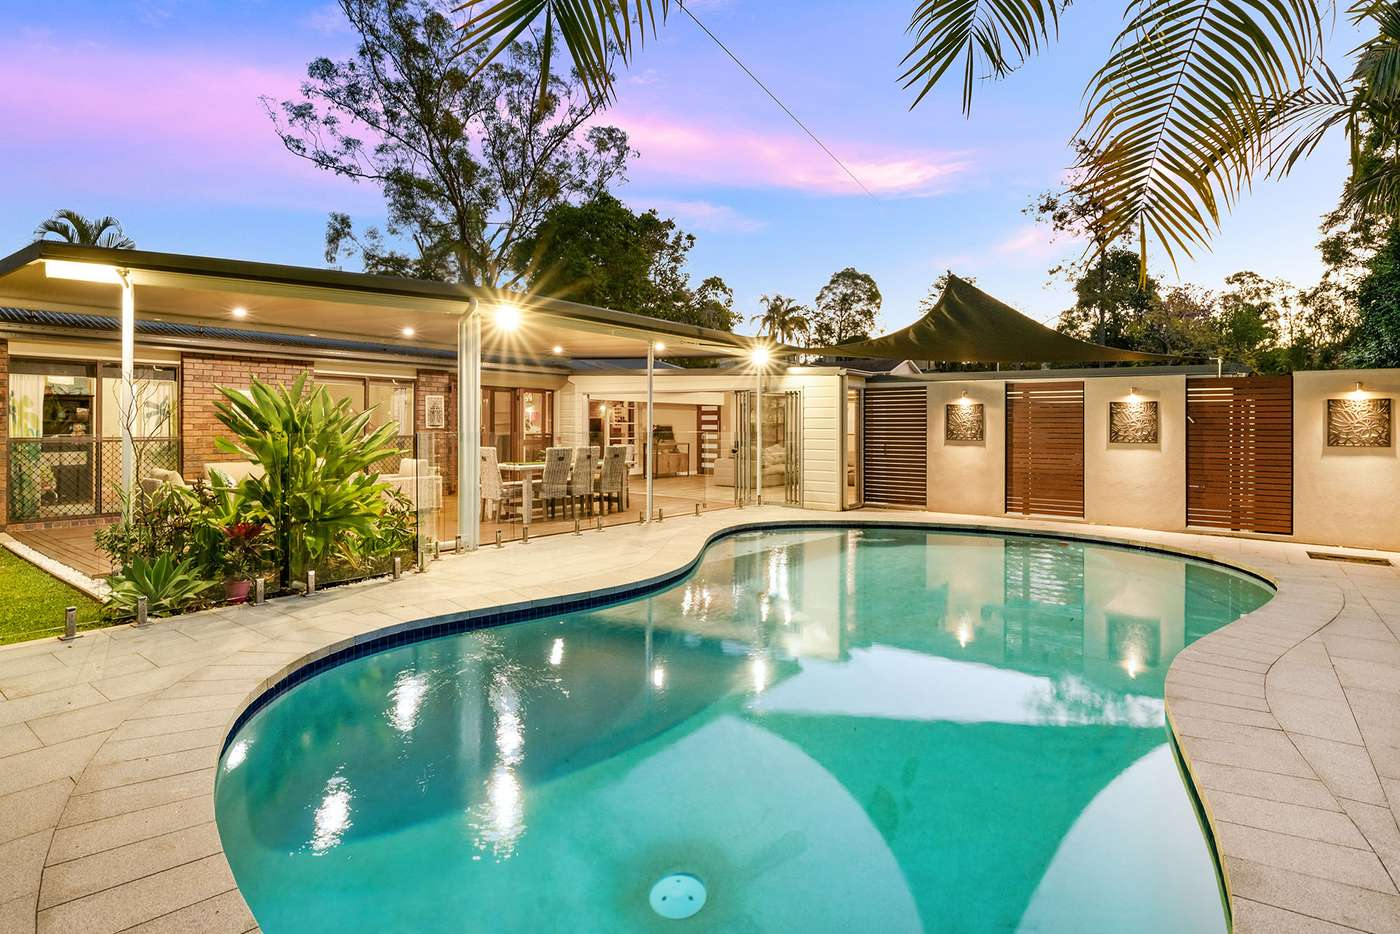 Main view of Homely house listing, 27 Mazzard Street, Bellbowrie QLD 4070